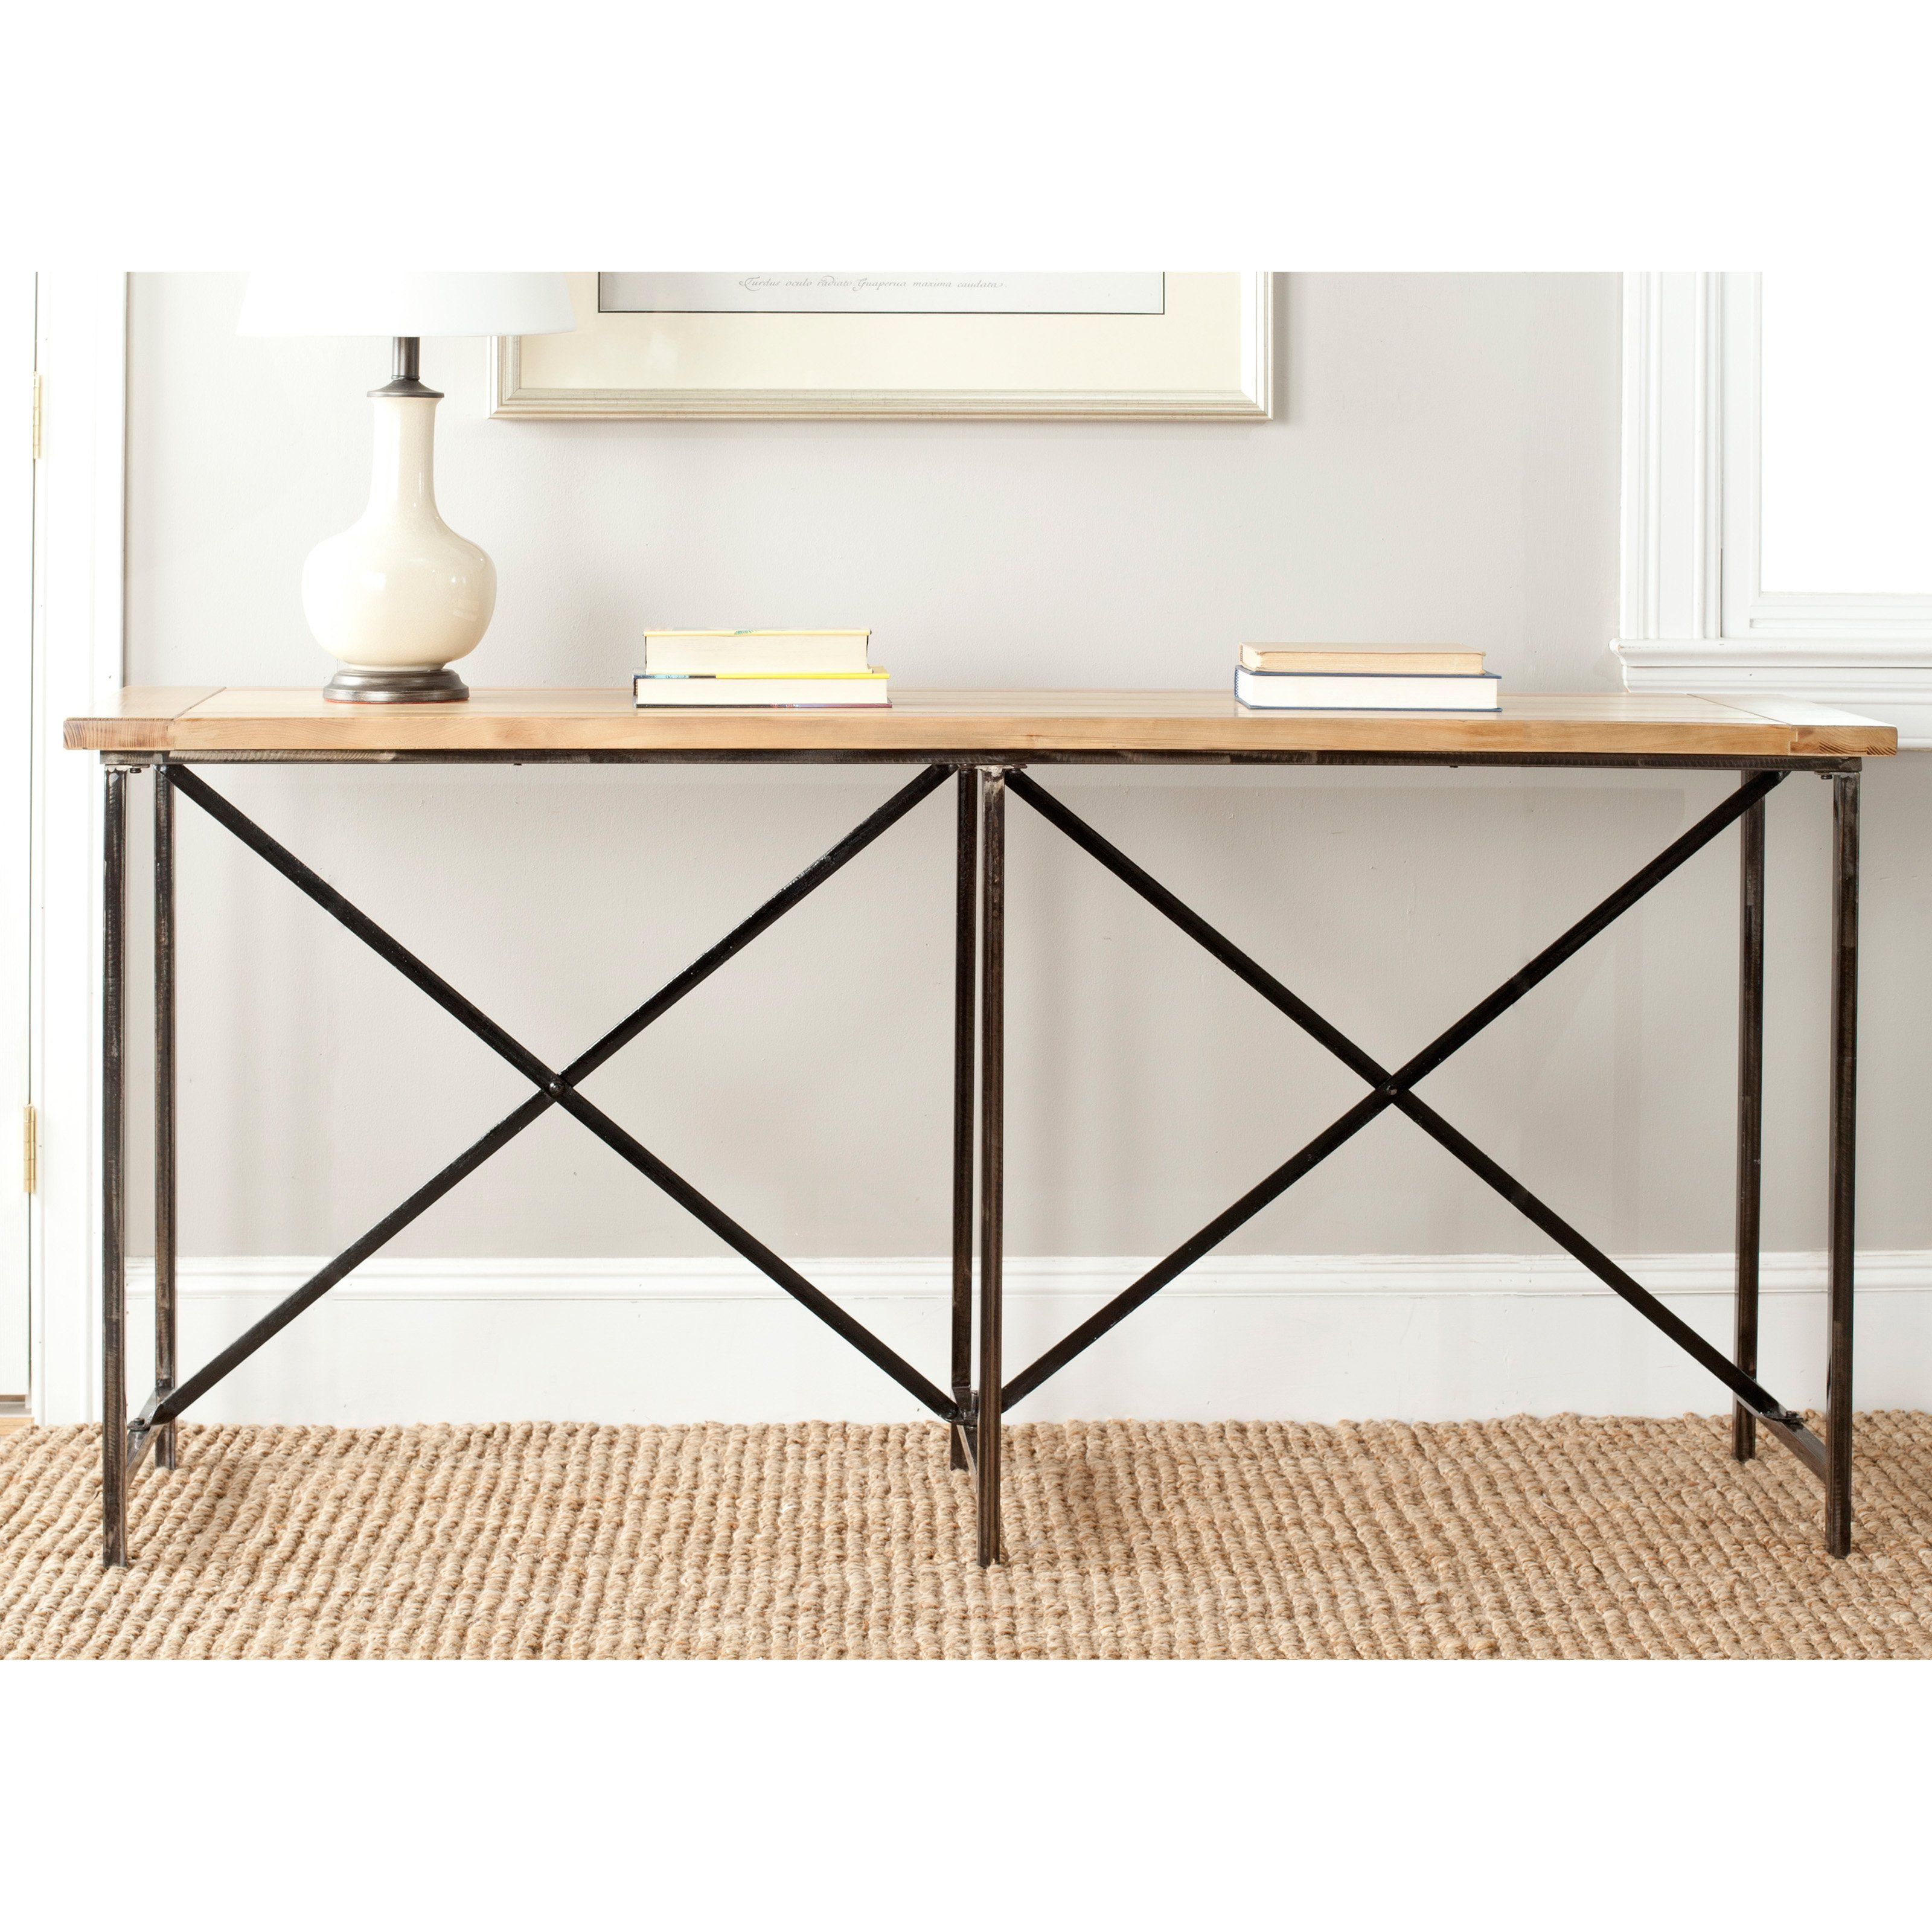 Have to have it. Safavieh Simon Console Table - Natural $319.99